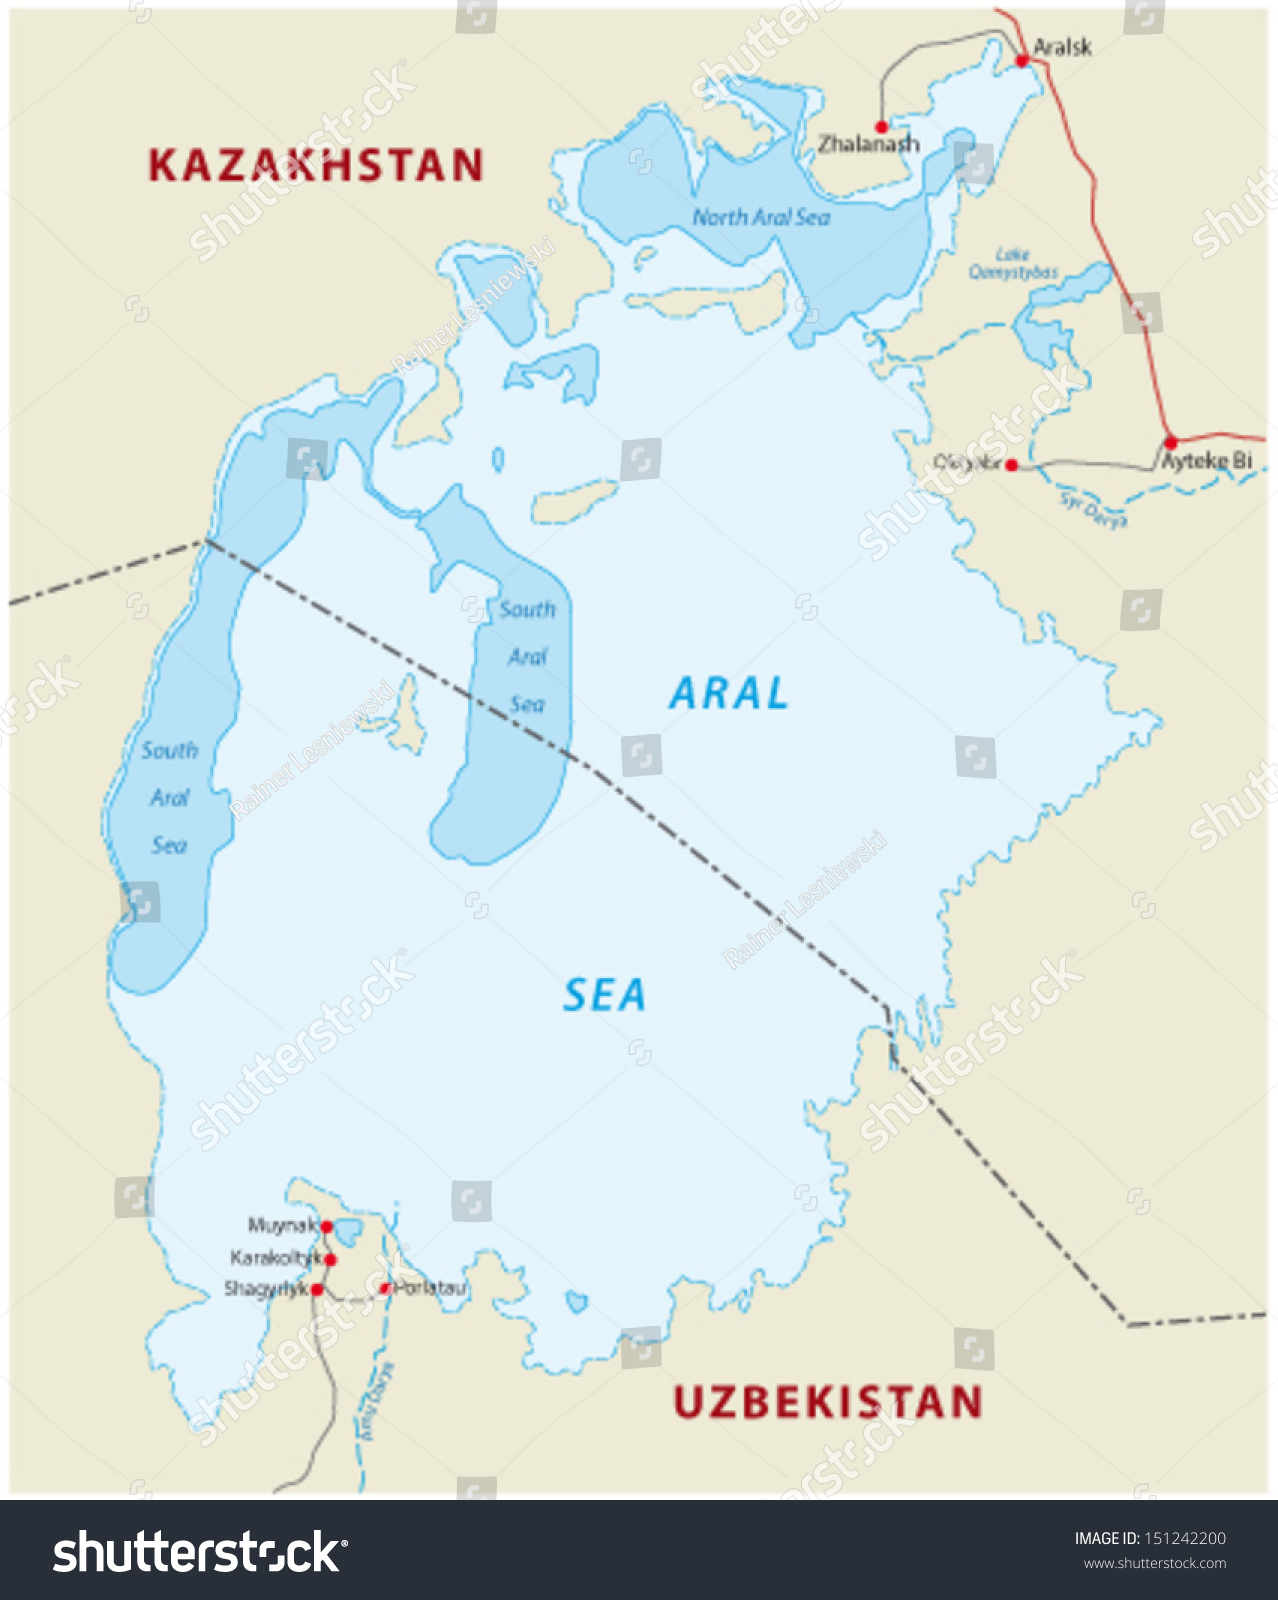 Aral Sea Map Aral Sea Map Stock Vector (Royalty Free) 151242200   Shutterstock Aral Sea Map